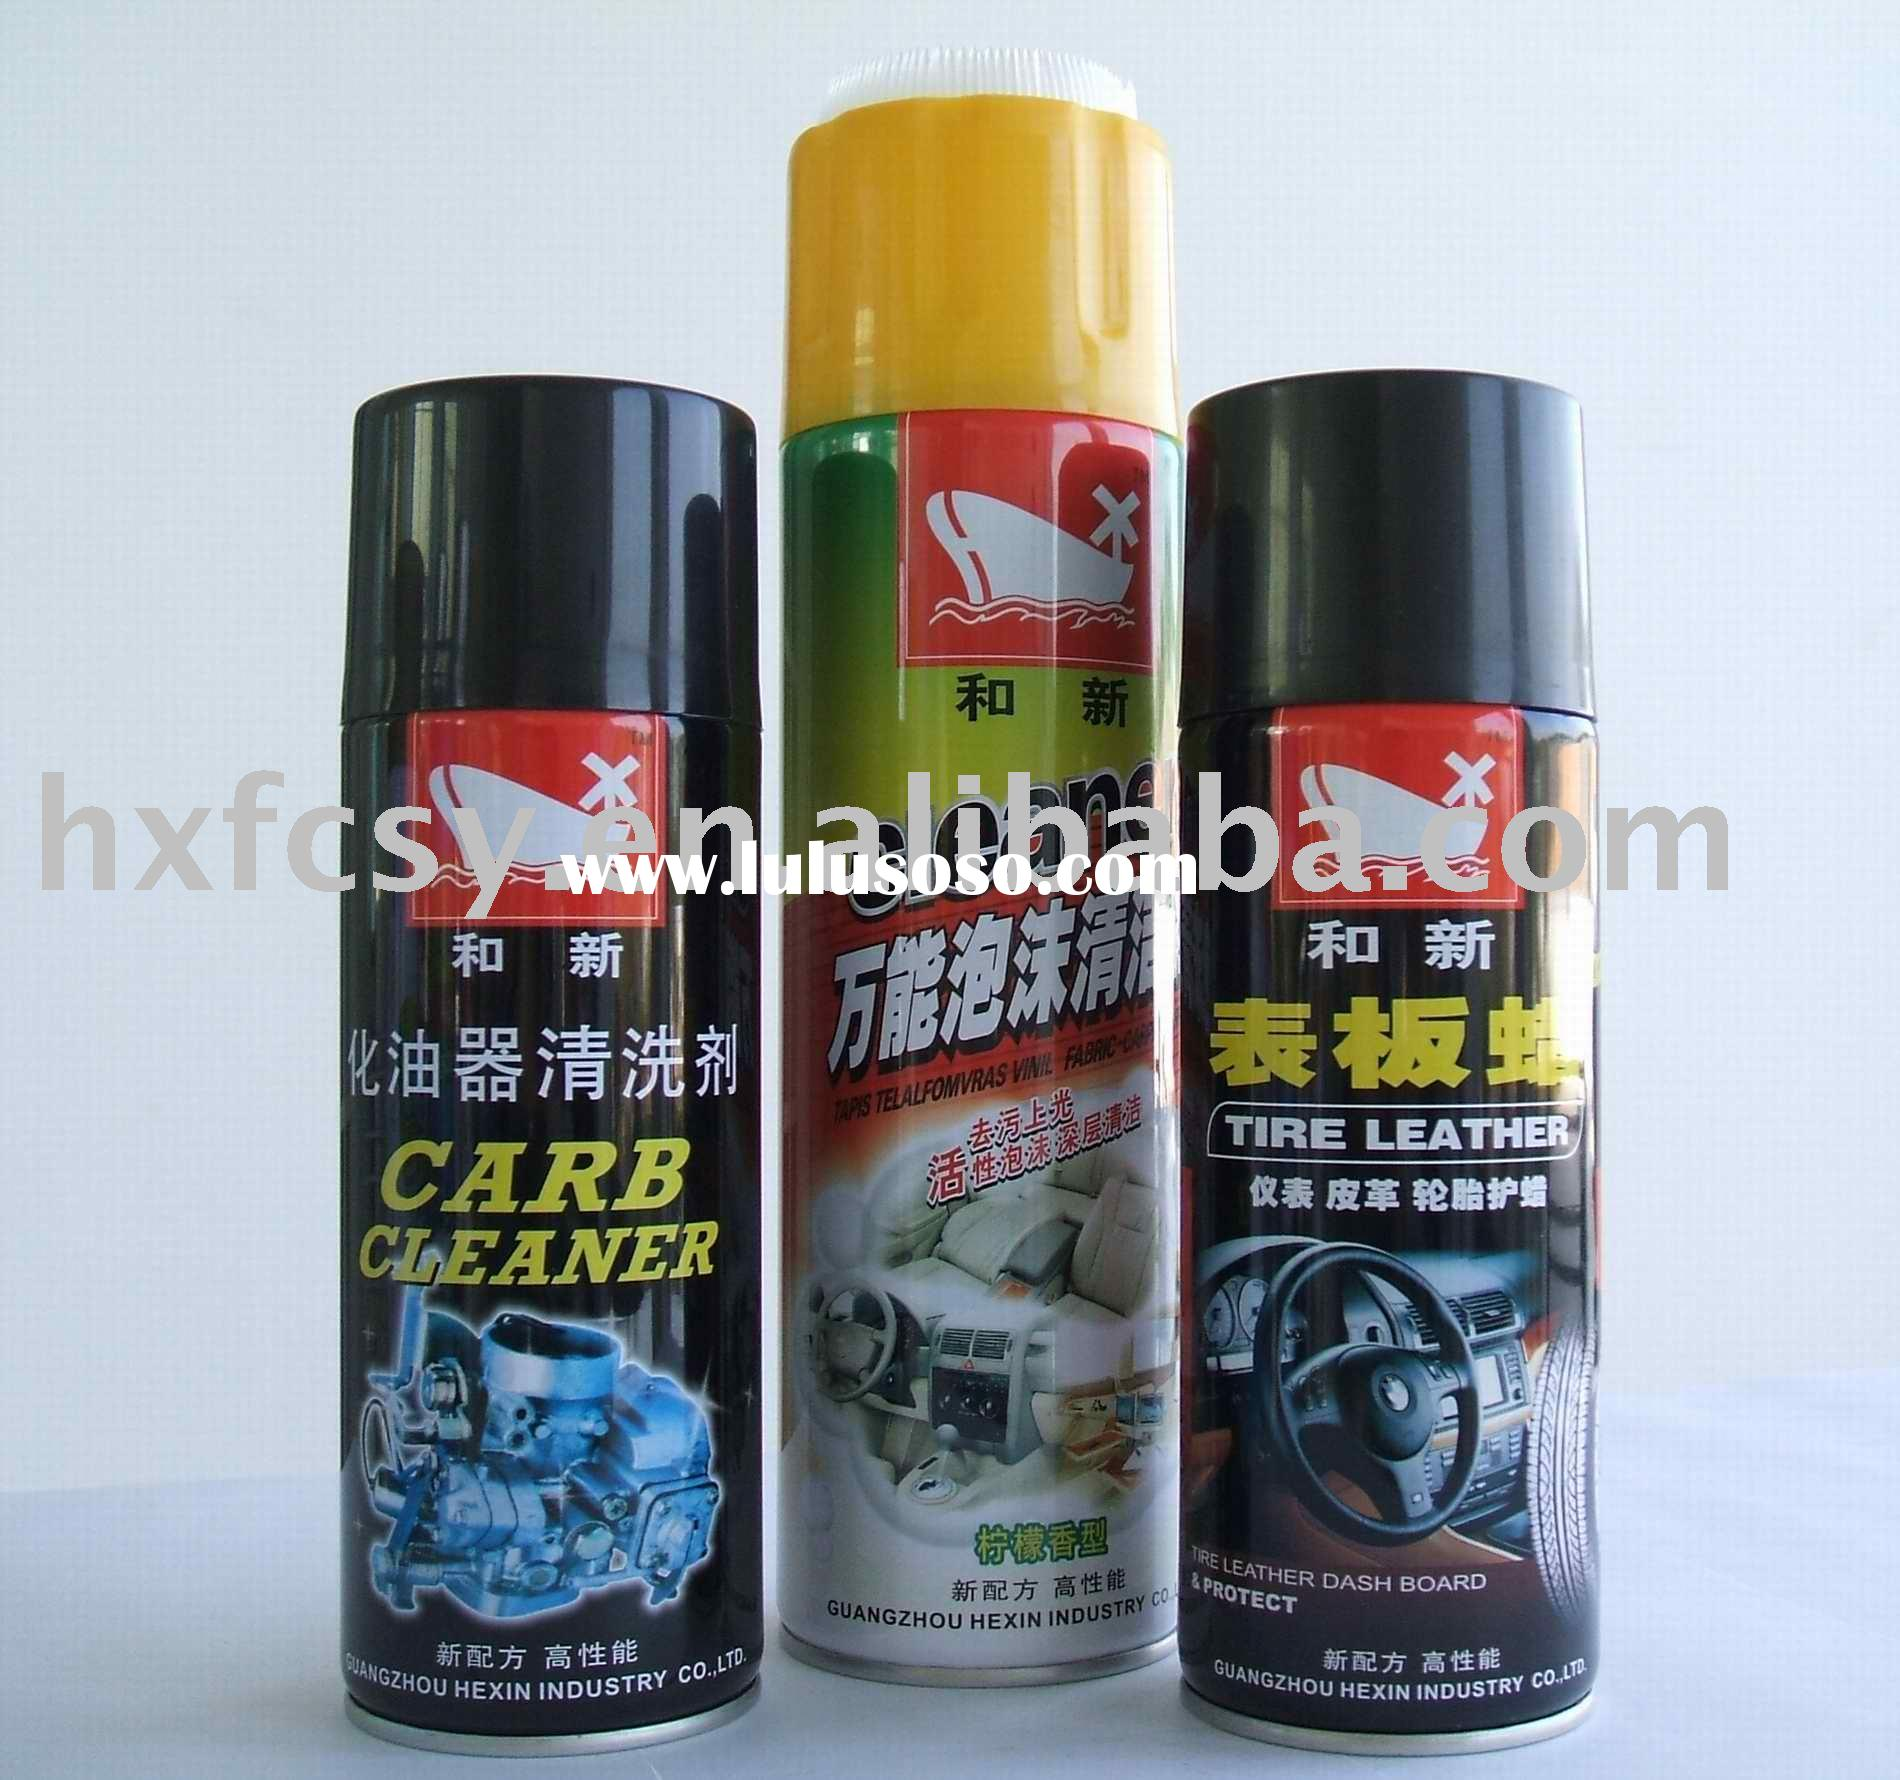 car care product,carburetor cleaner,car wax spray,multi-purpose foamy cleaner...